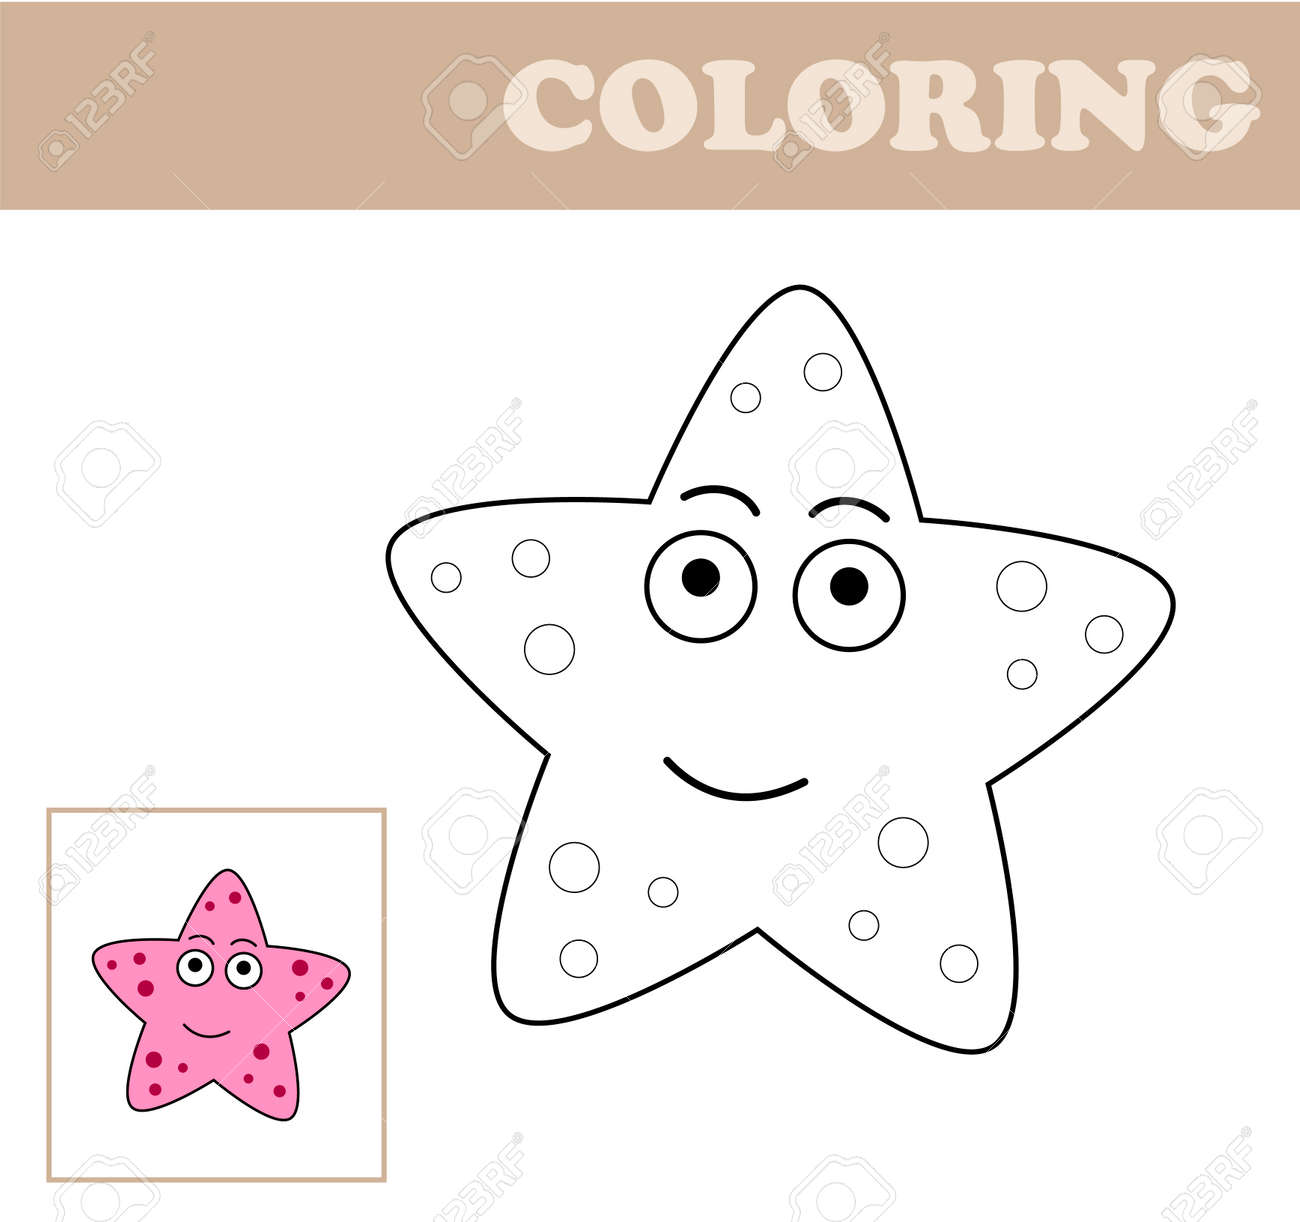 Coloring Page With Sea Star. Coloring Book For Children. Educational ...